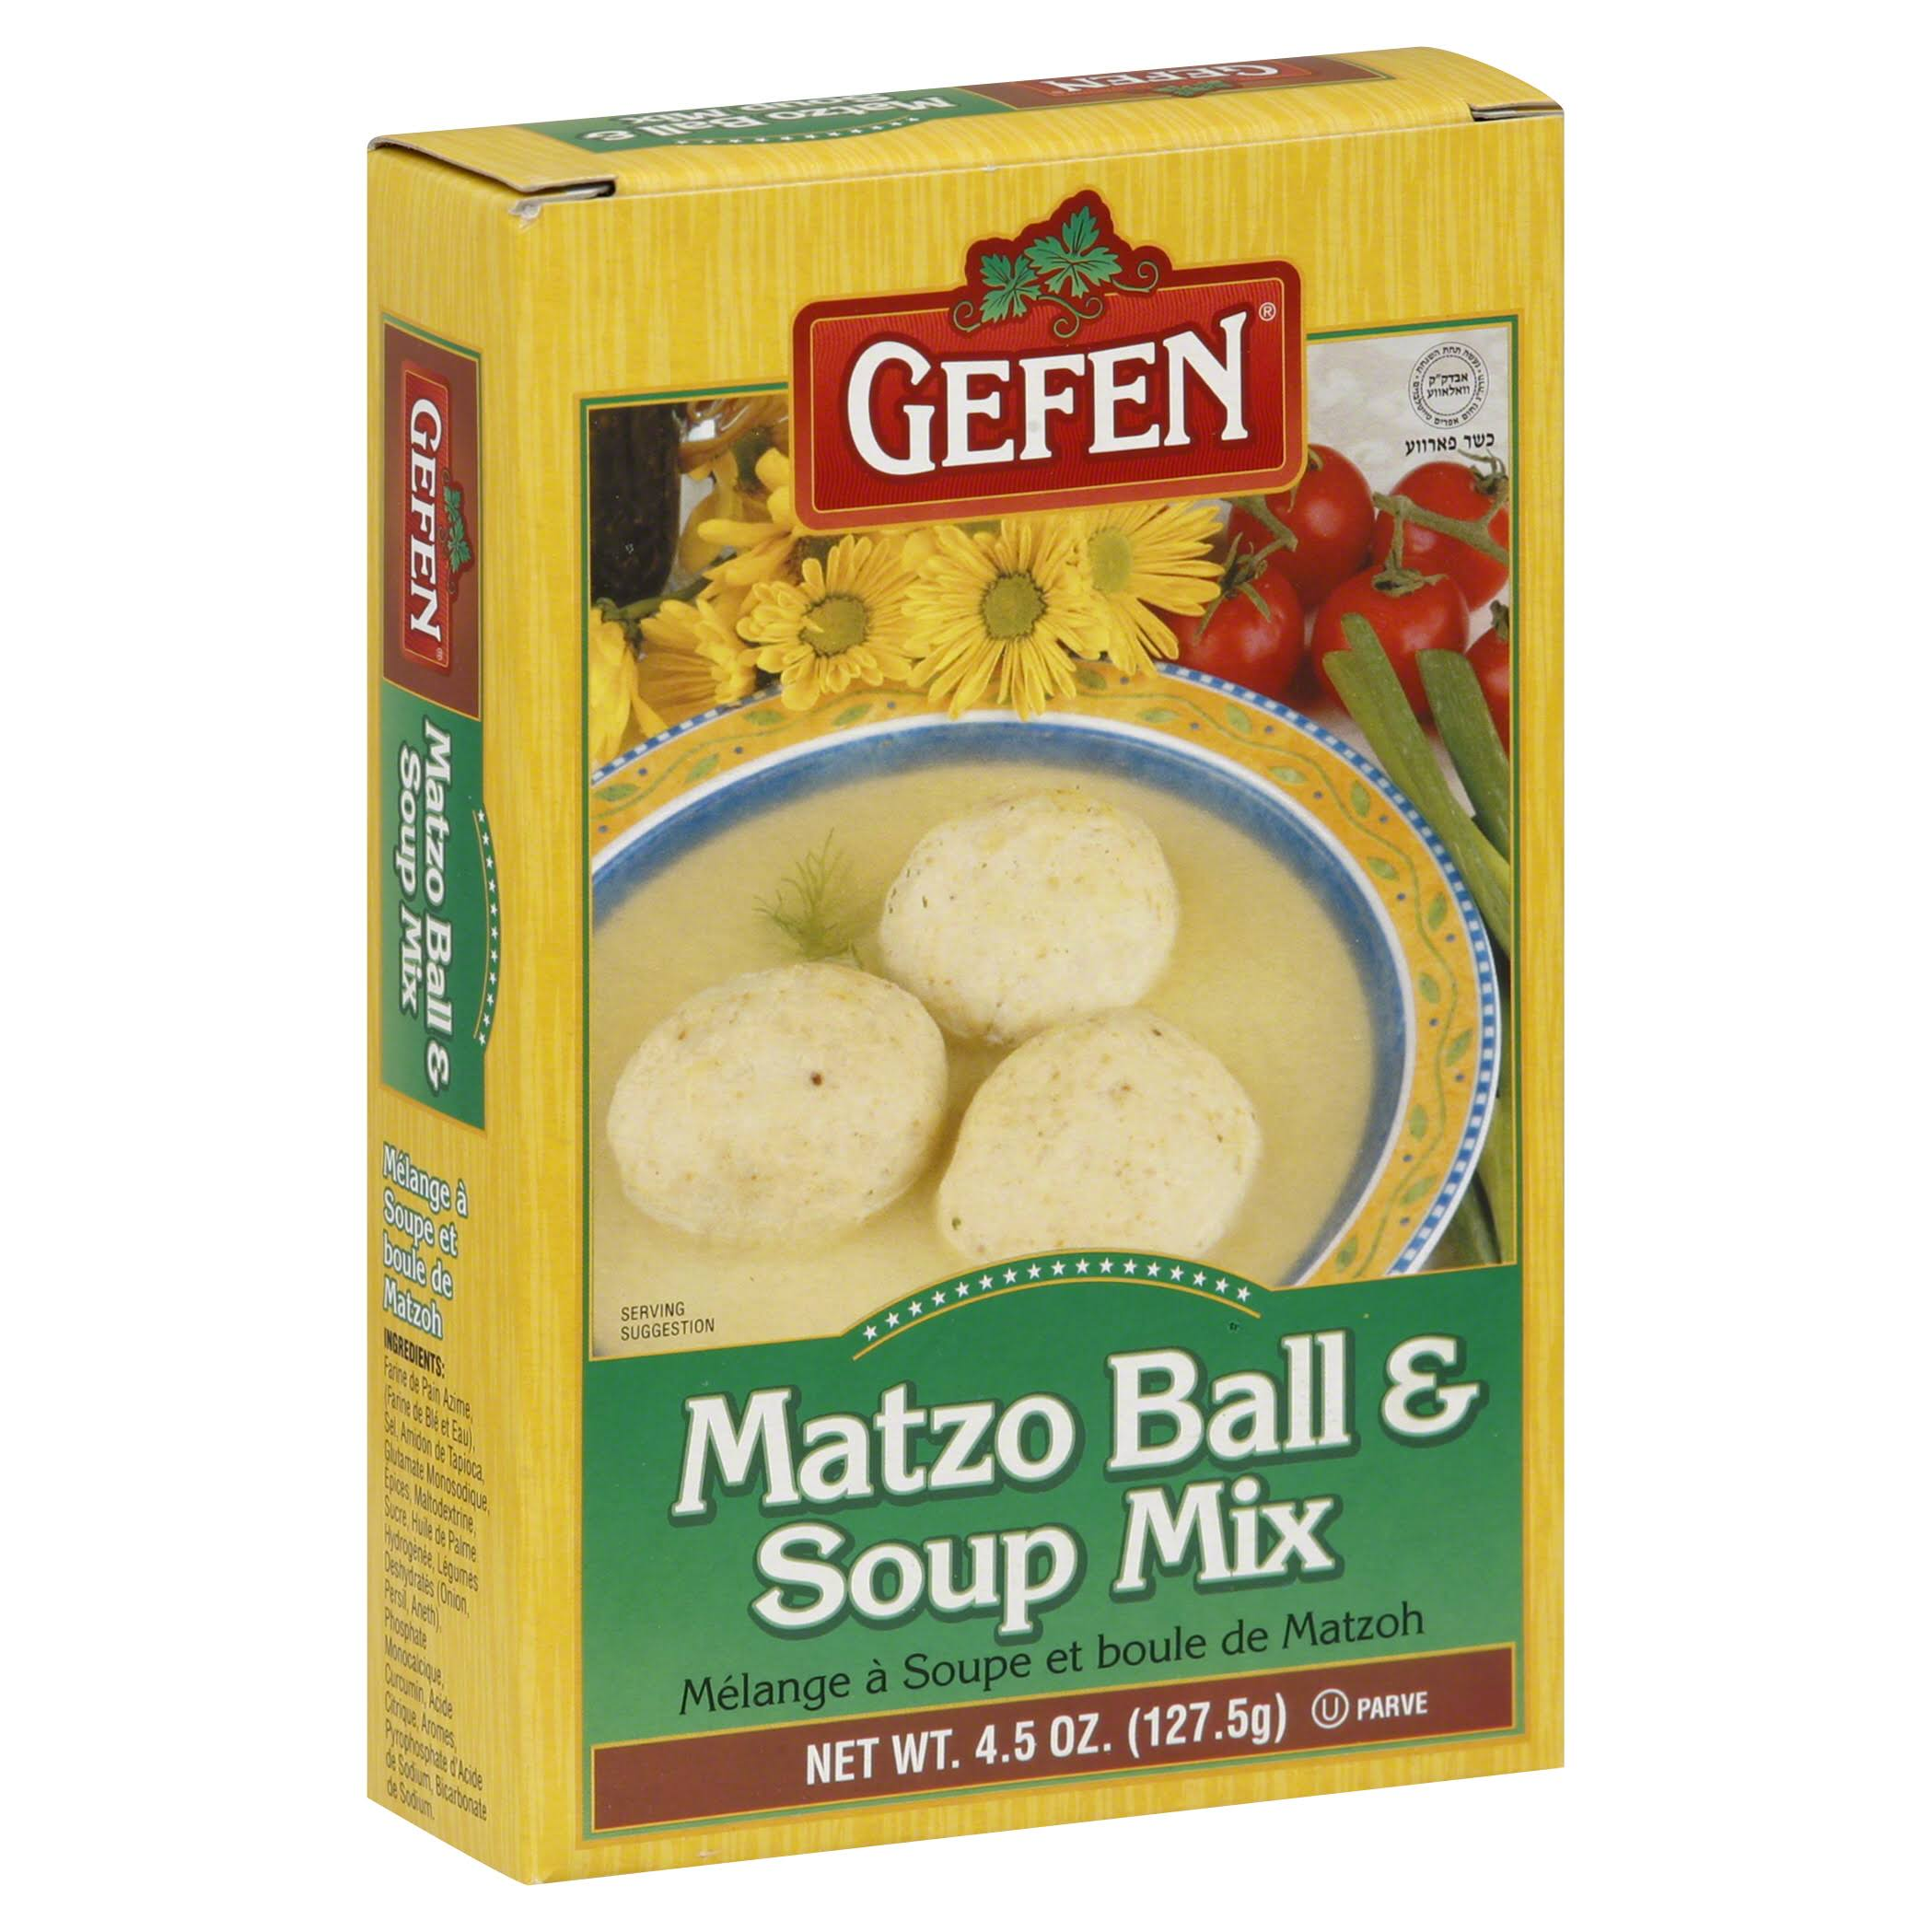 Gefen Matzo Ball & Soup Mix - 4.5 oz